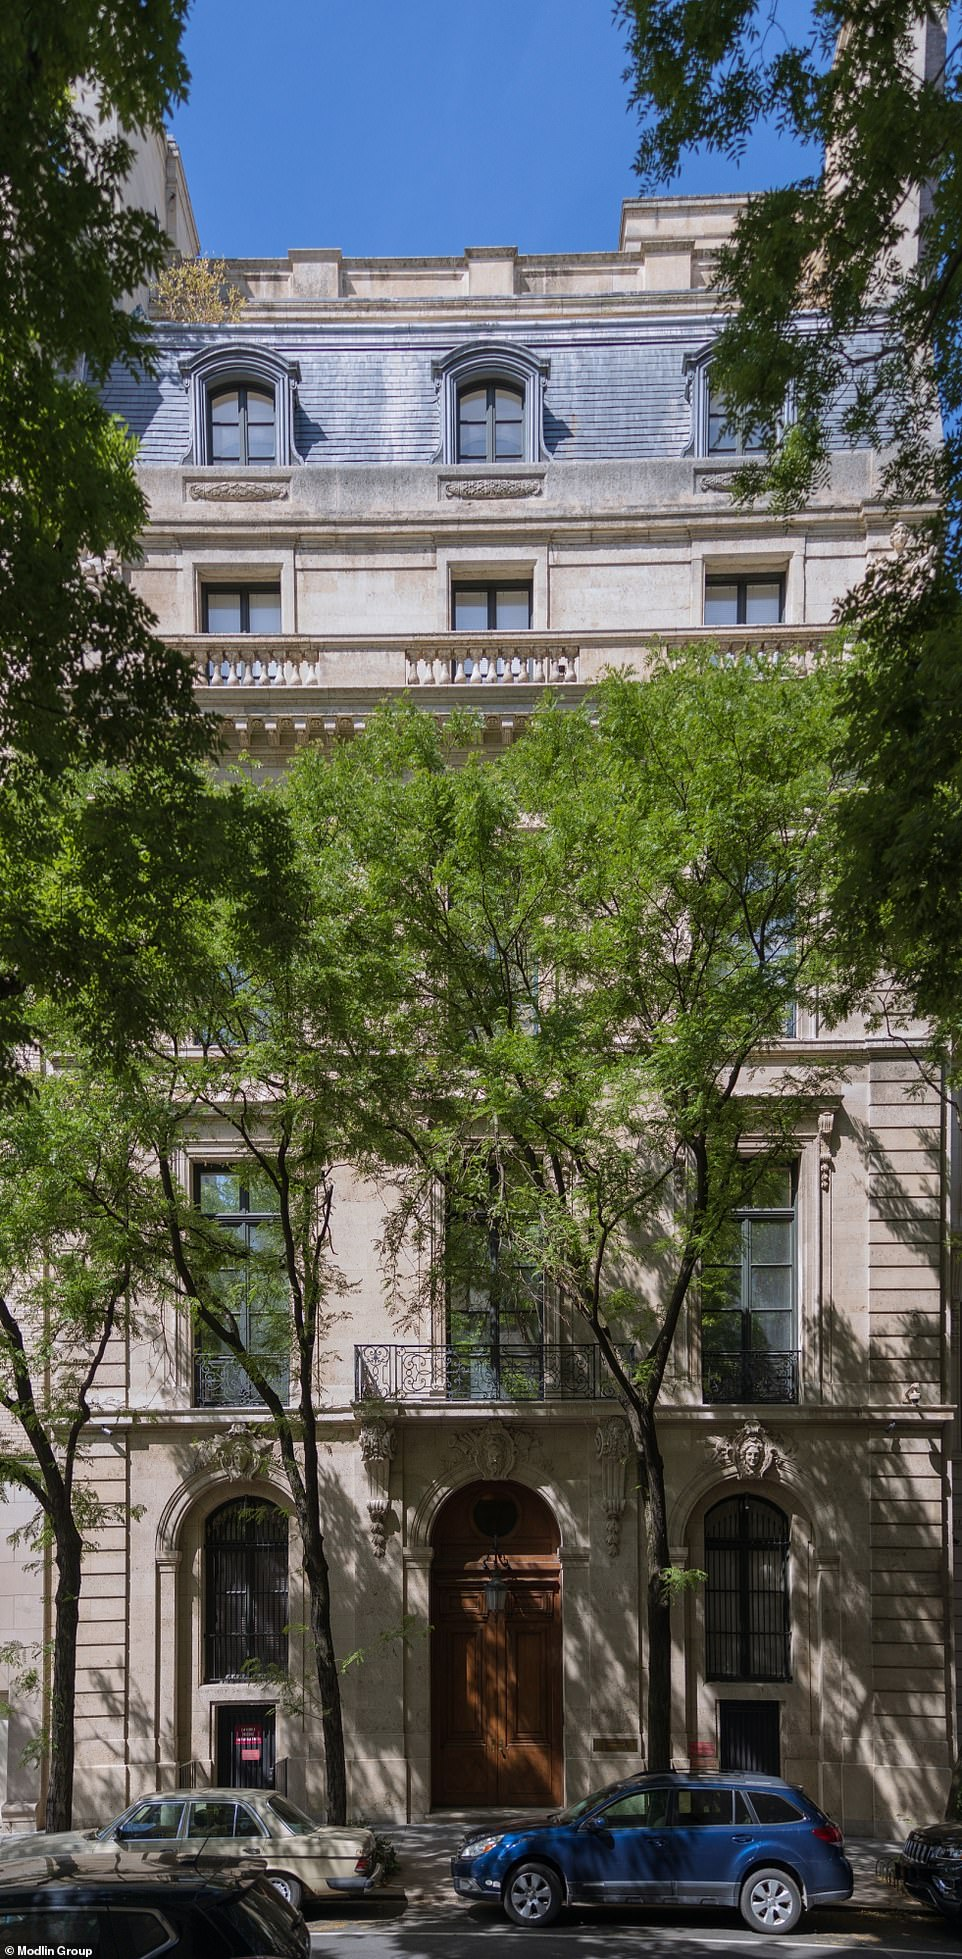 Jeffery Epstein's Upper East Side townhouse has its price cut from $88M to $65M